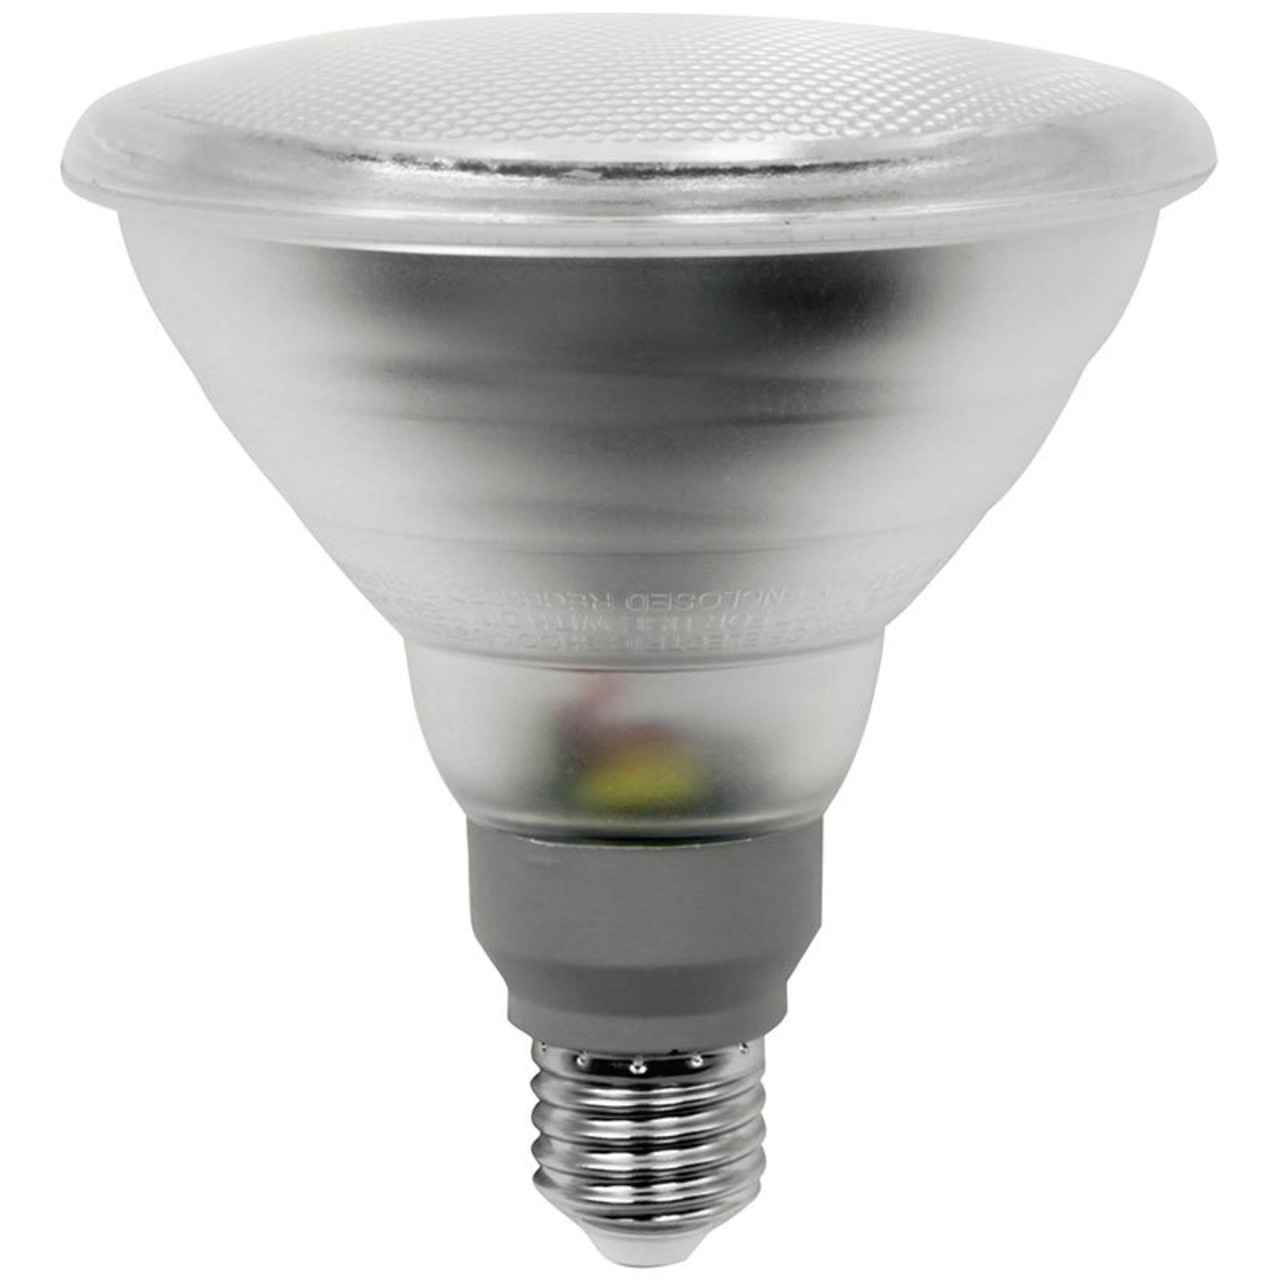 Lightme 12-W-PAR38-LED-Lampe E27- warmweiss